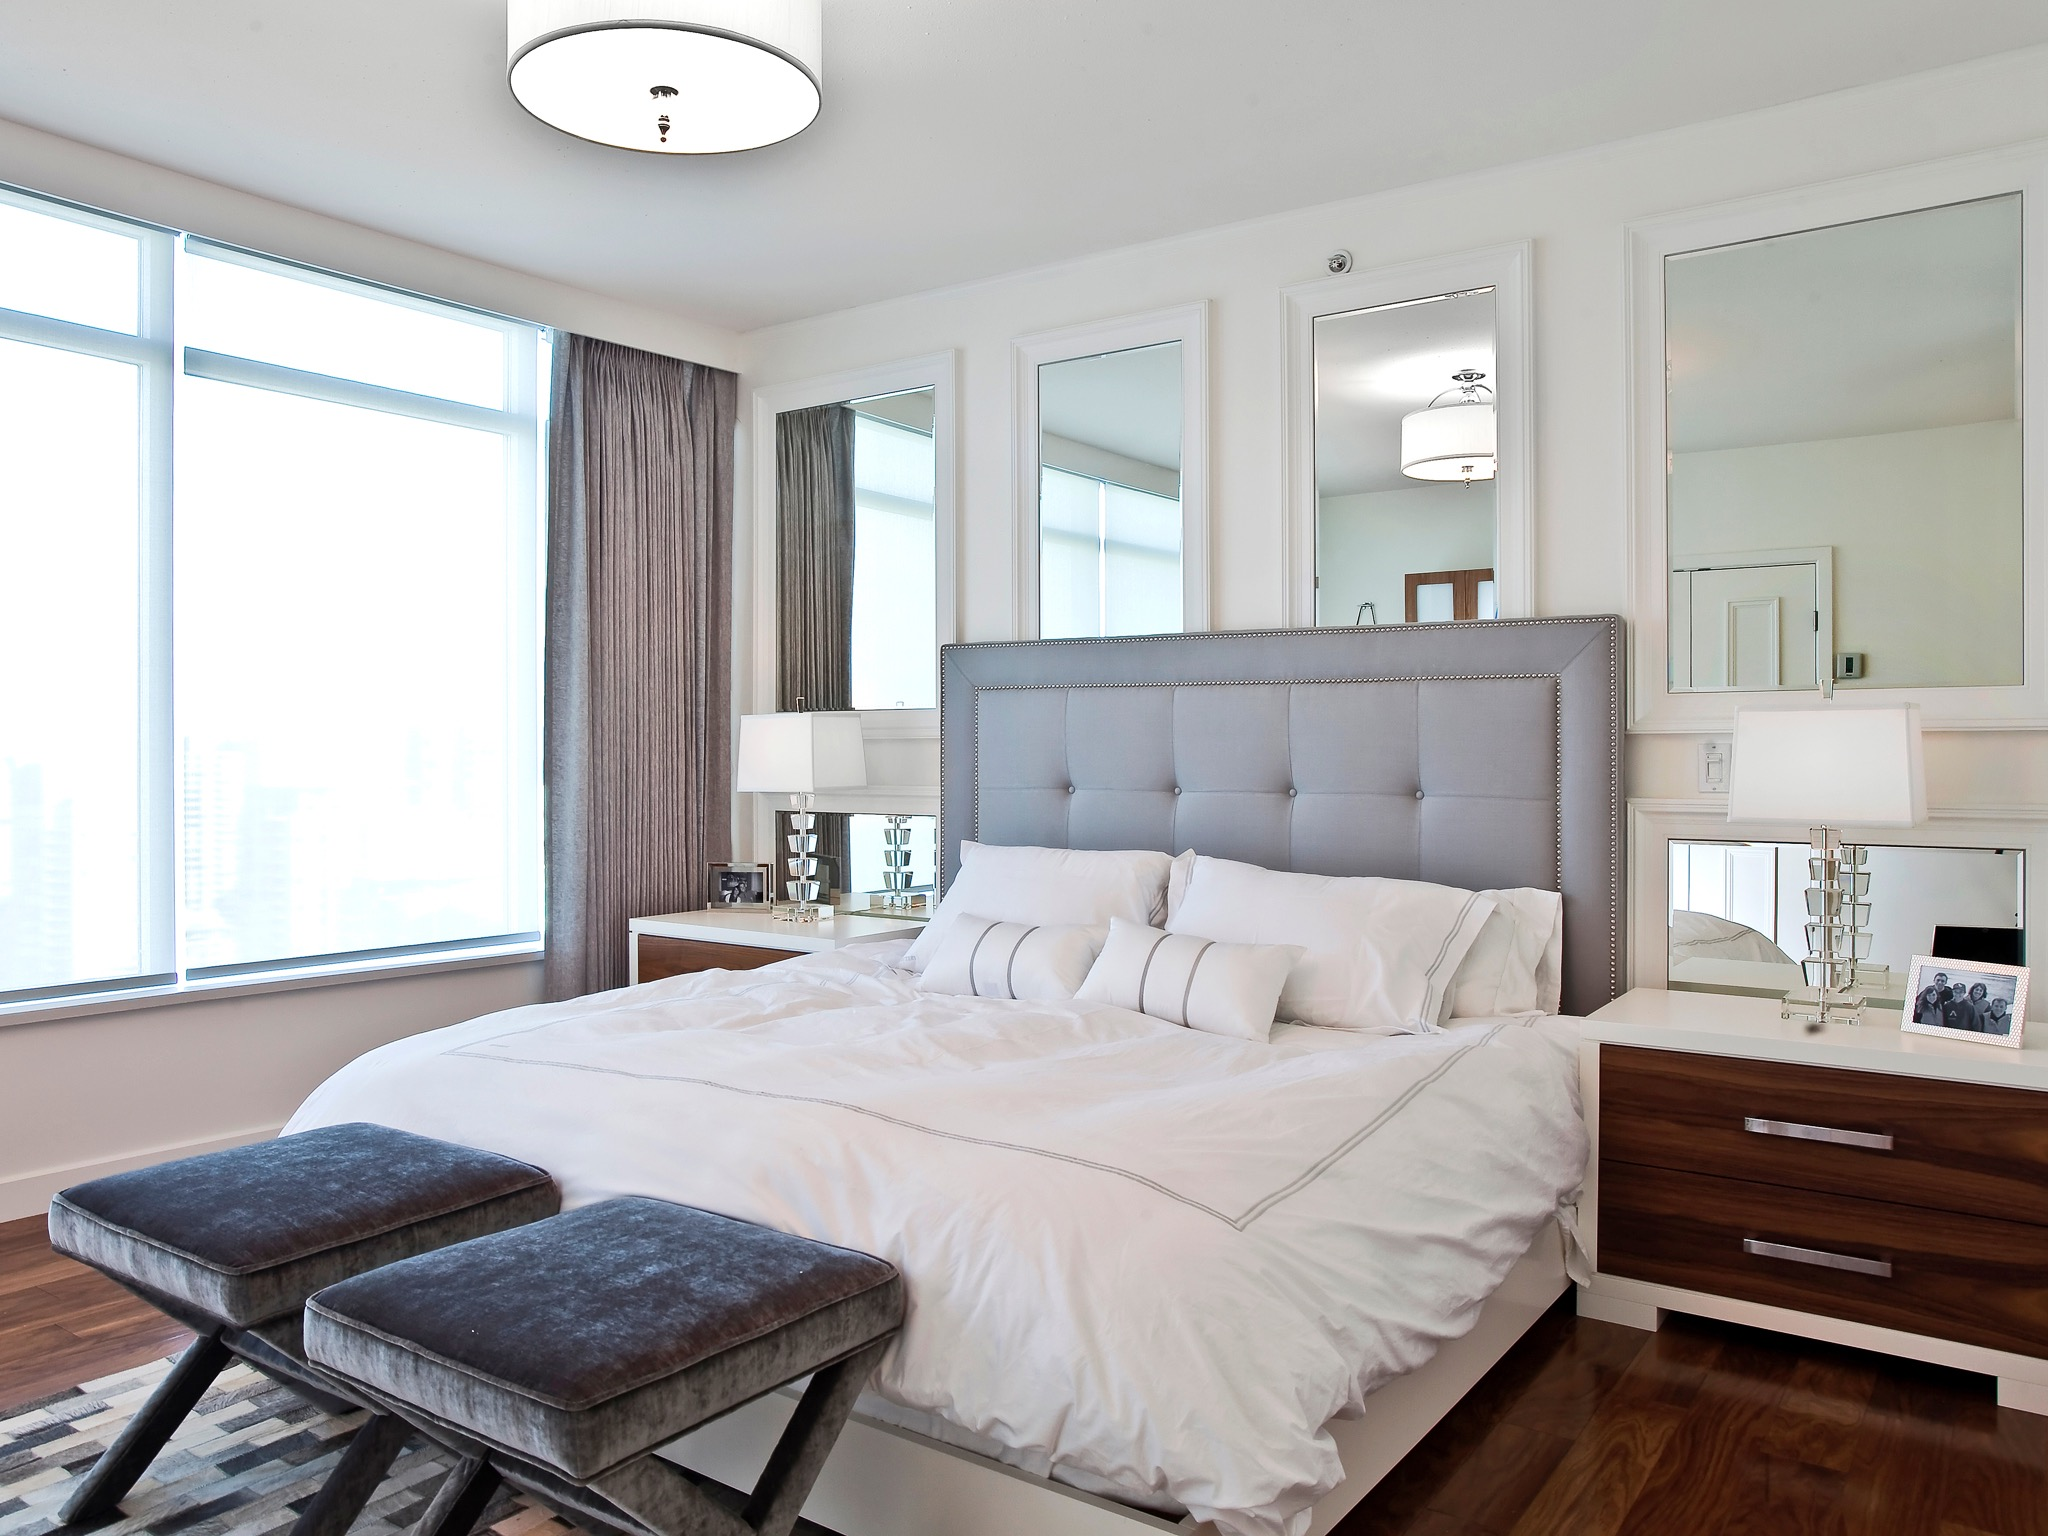 Contemporary Bedroom Covered Wall Of Framed Mirrors (Photo 5 of 20)